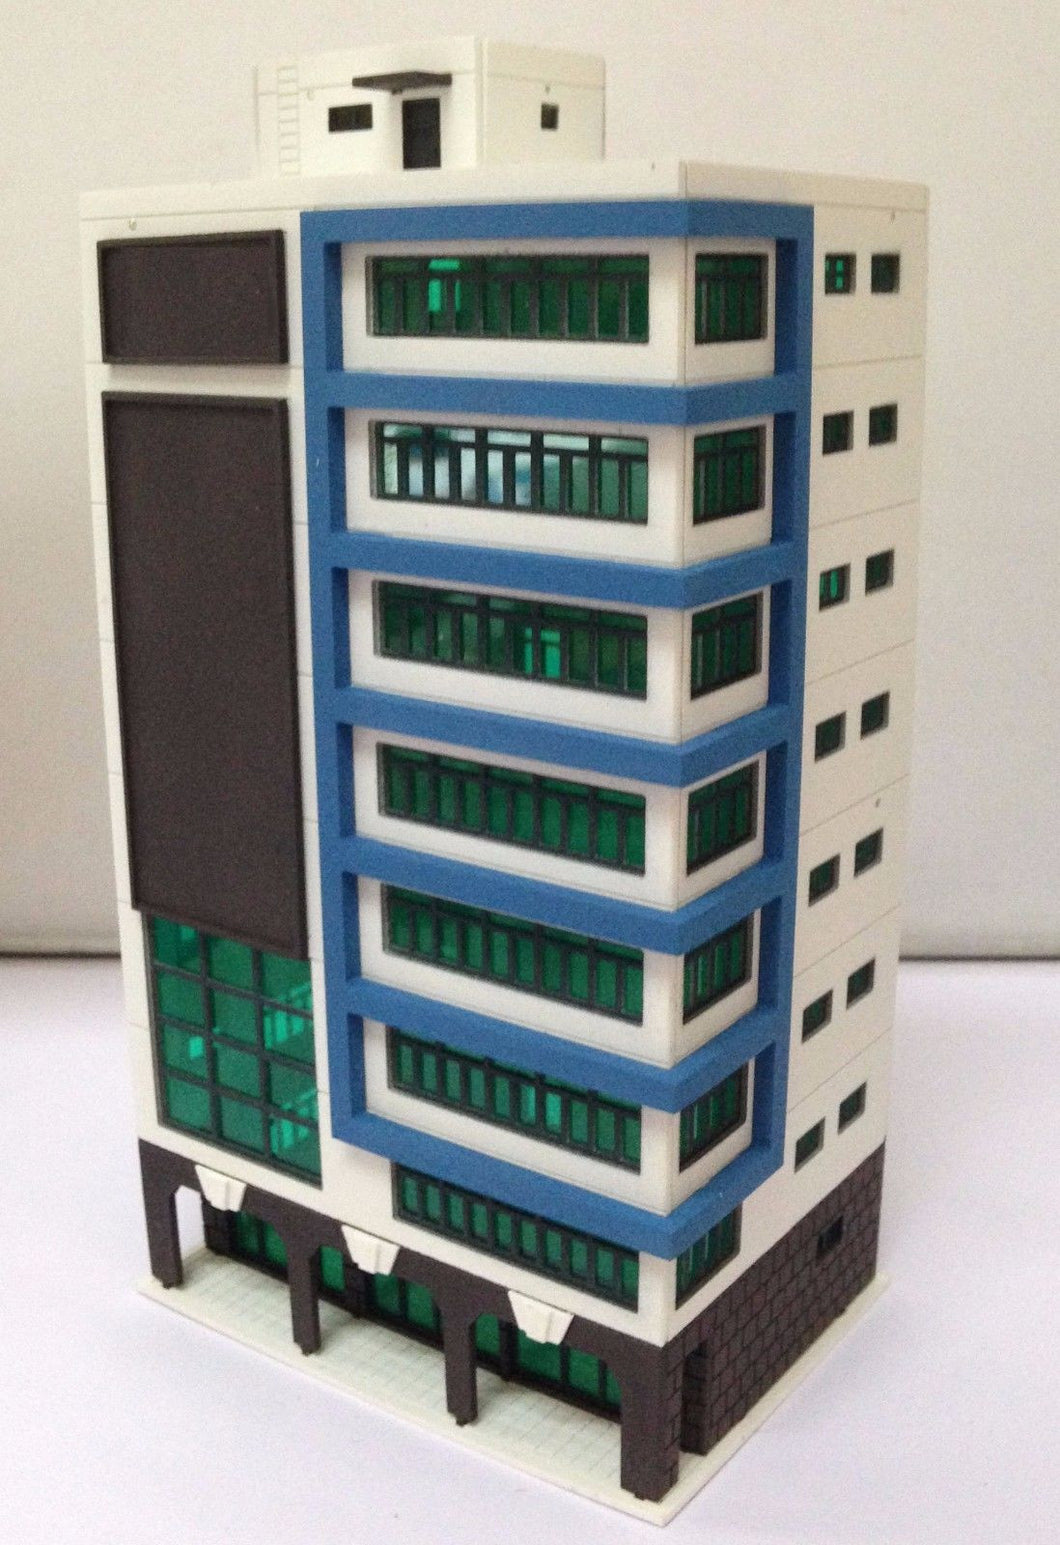 Colored Modern City Building Tall Shopping Mall N Scale Outland Models Railway